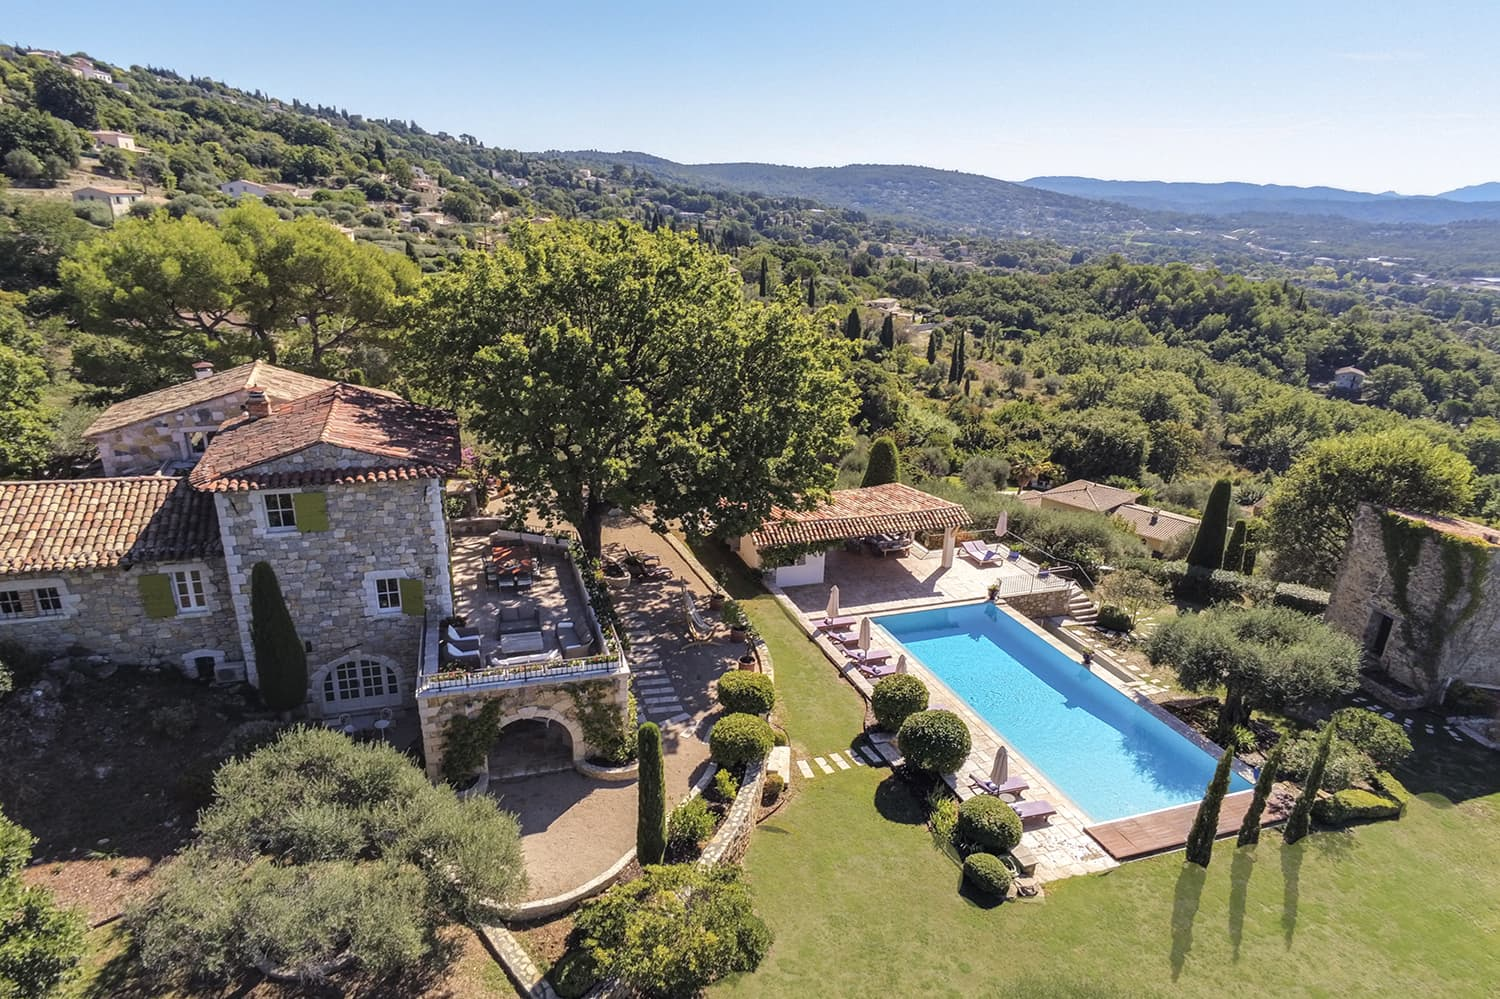 Holiday accommodation in Montauroux, Provence-Alpes-Côte d'Azur with private, heated pool